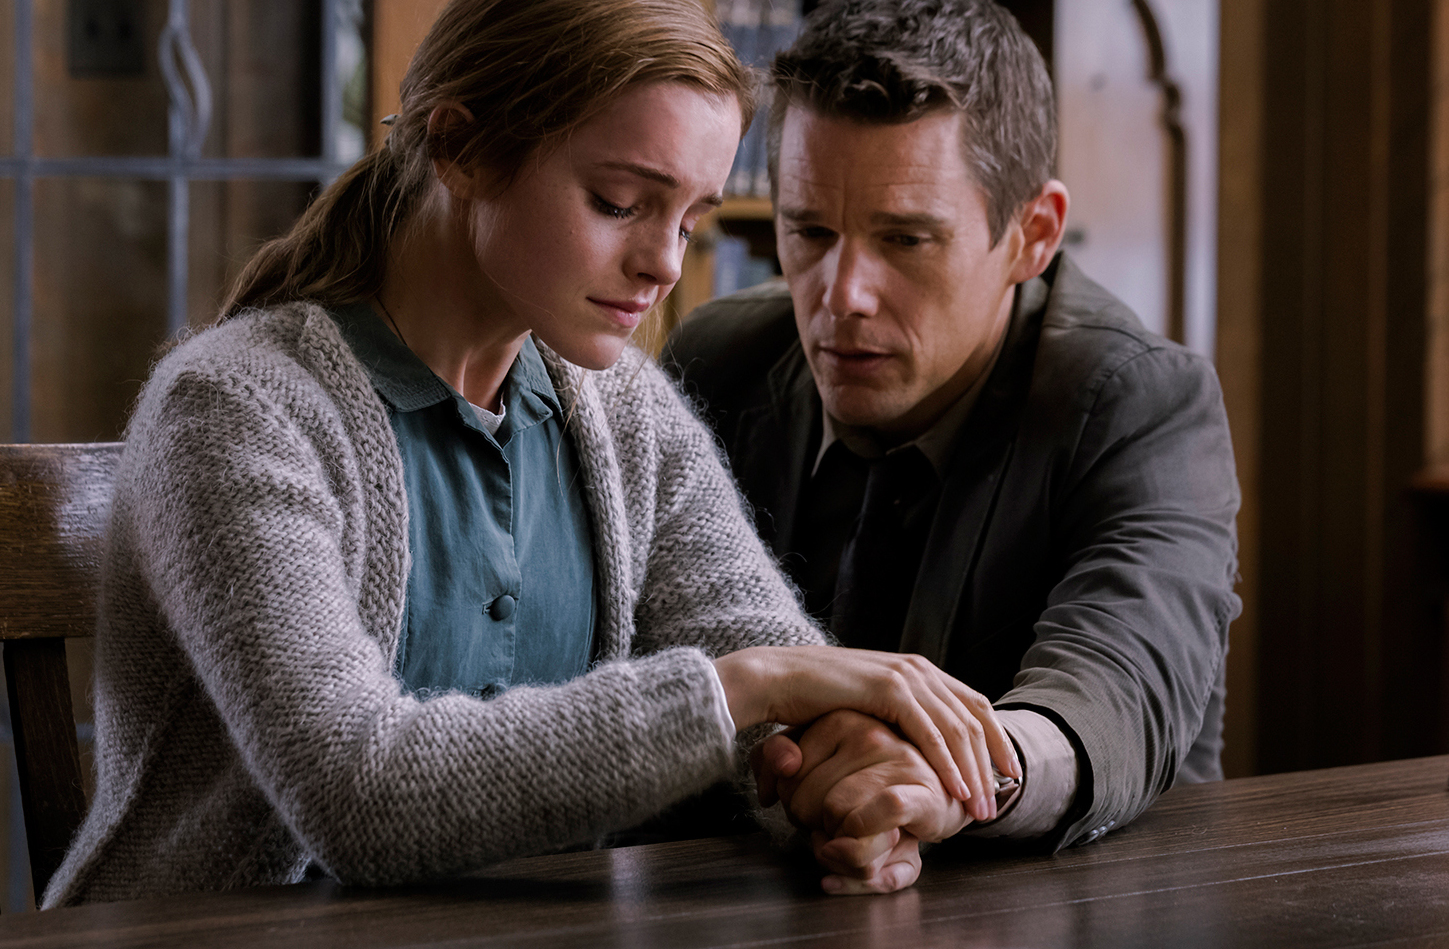 regression-official-trailer-starring-emma-watson-and-ethan-hawke-001